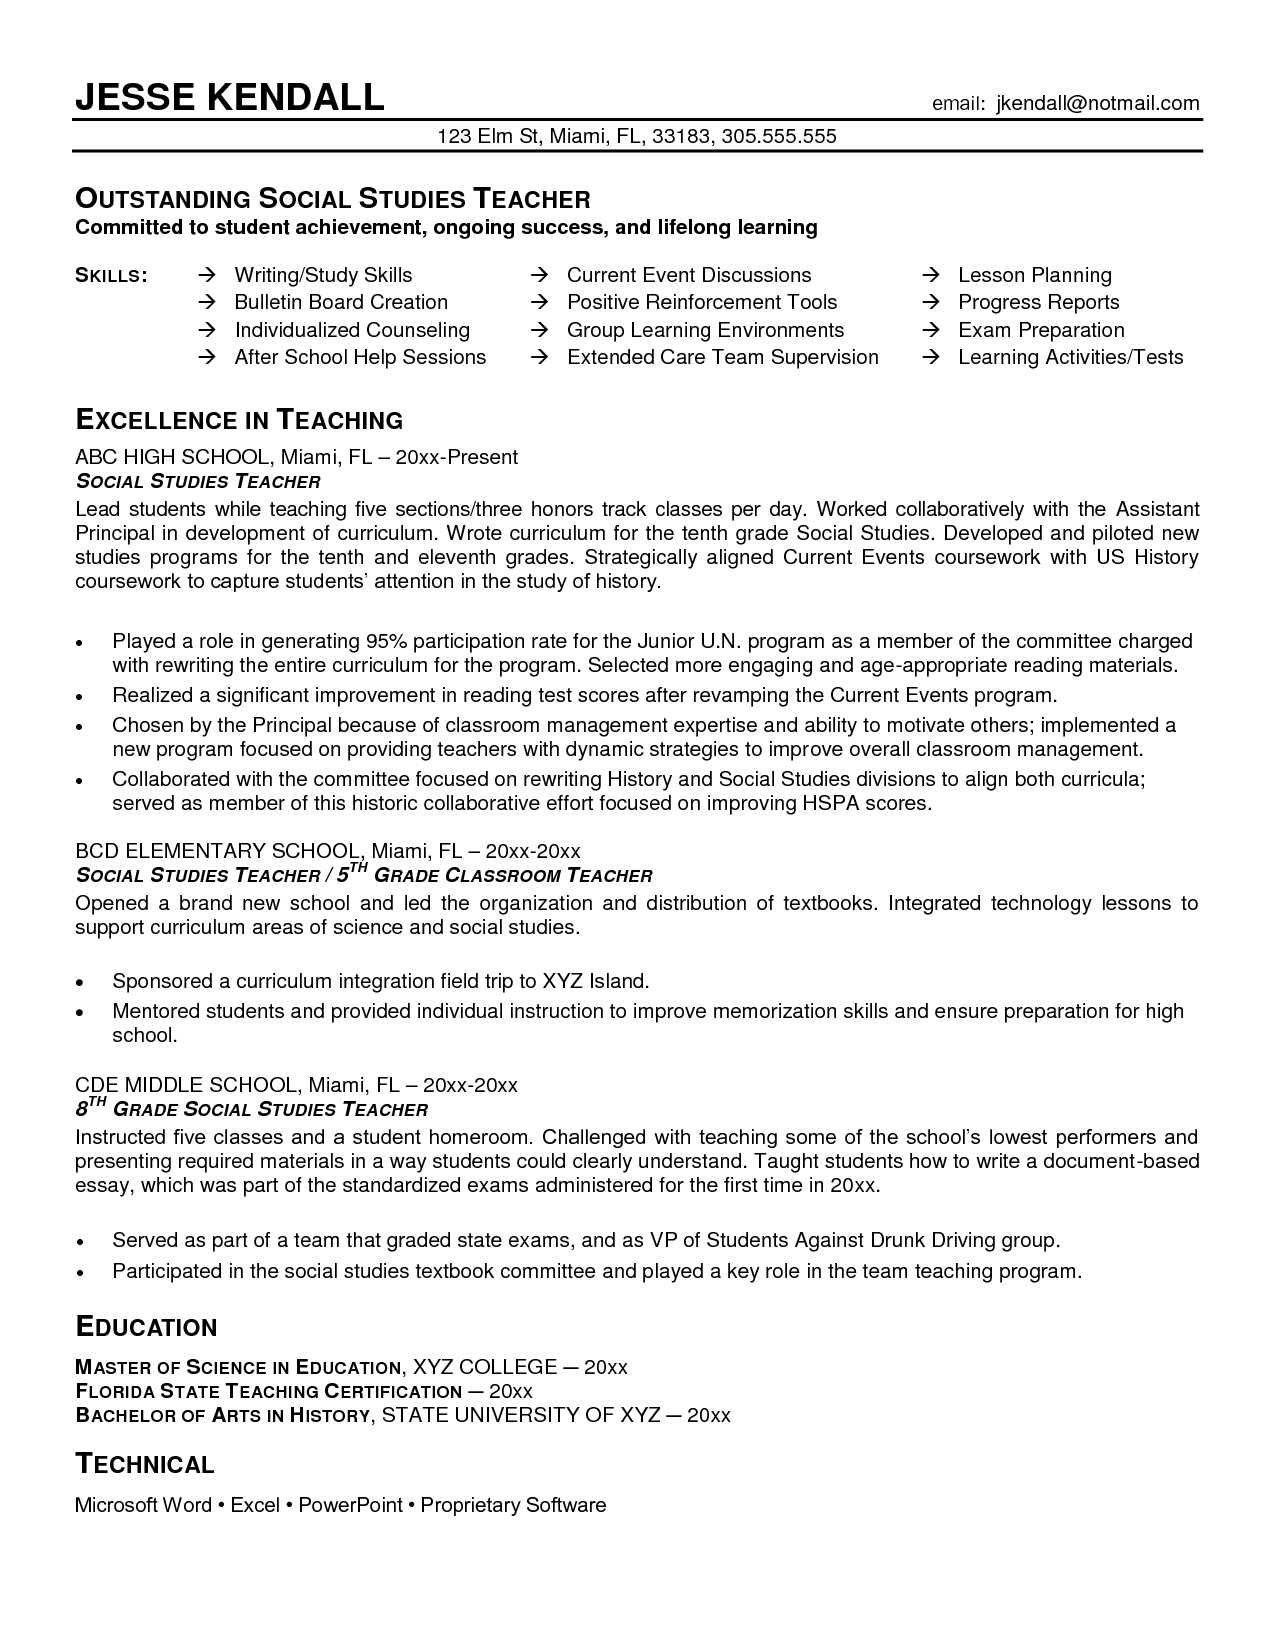 History Teacher Sample Resume - Google Search | Work | Pinterest